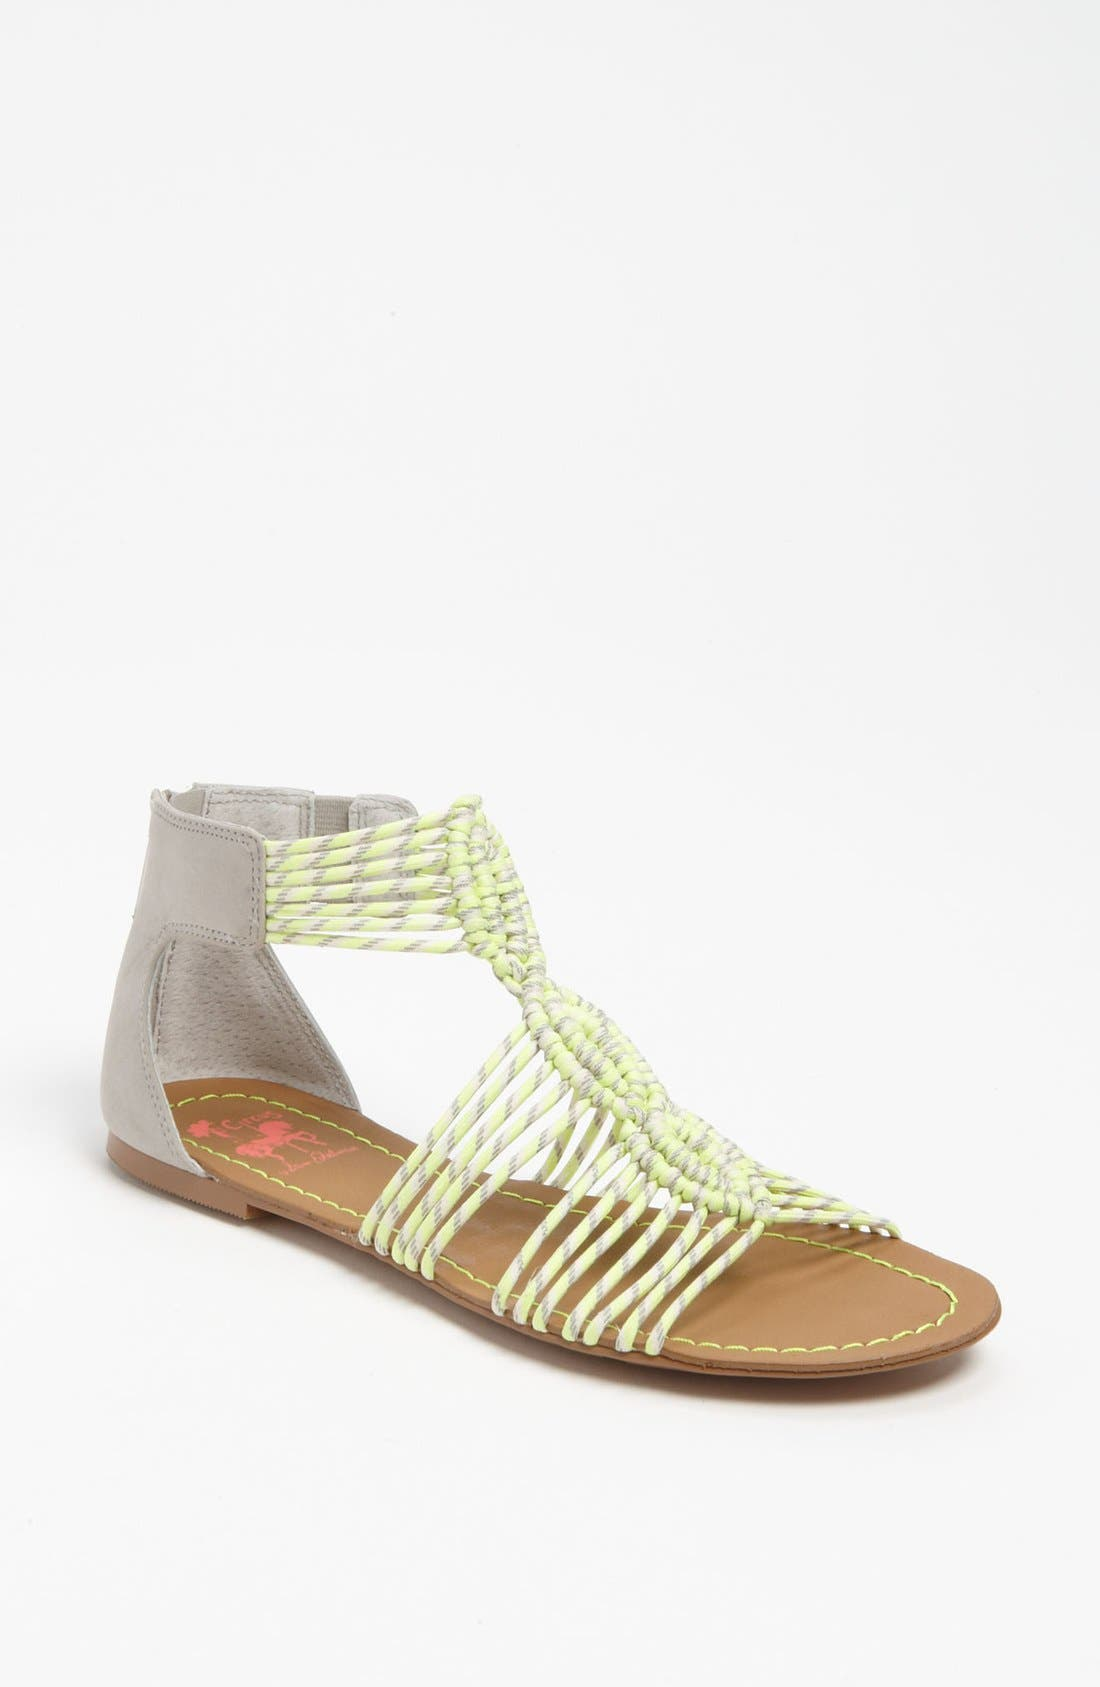 Alternate Image 1 Selected - Circus by Sam Edelman 'Becca' Sandal